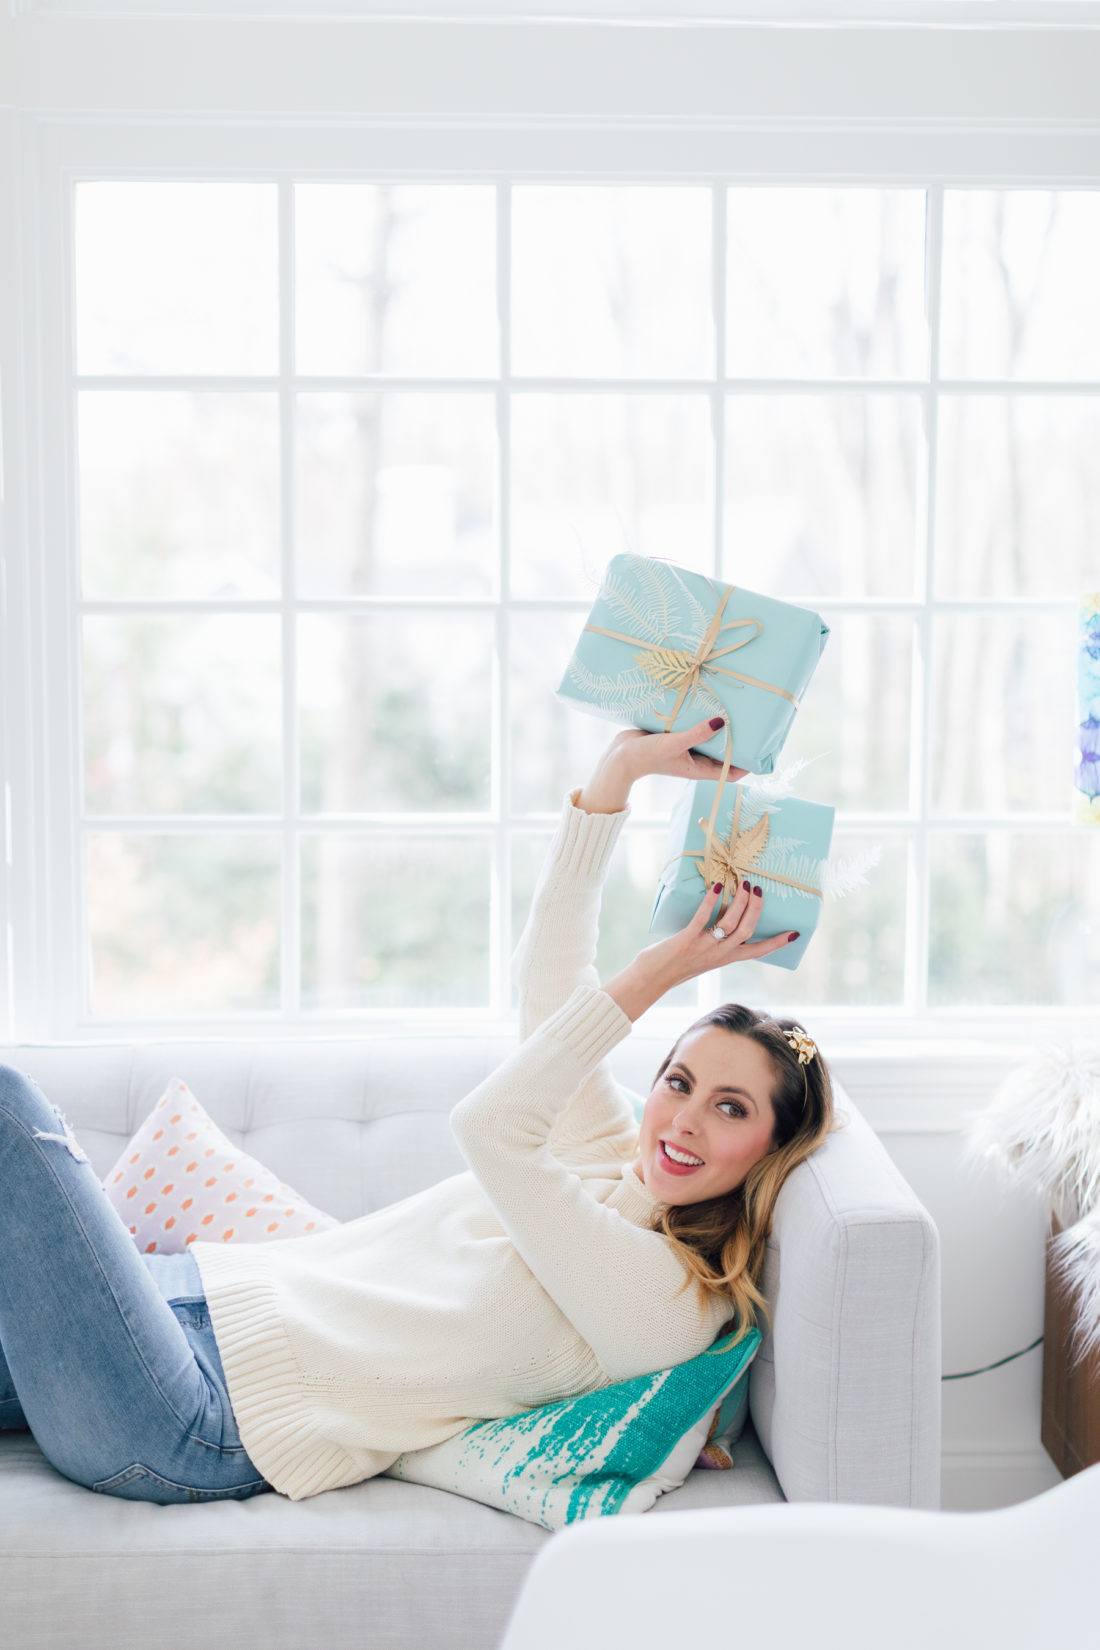 Eva Amurri Martino wears her cream colored sweater and levi jeans, and lays on the couch at home, holding robin's egg colored gifts with gold ribbon